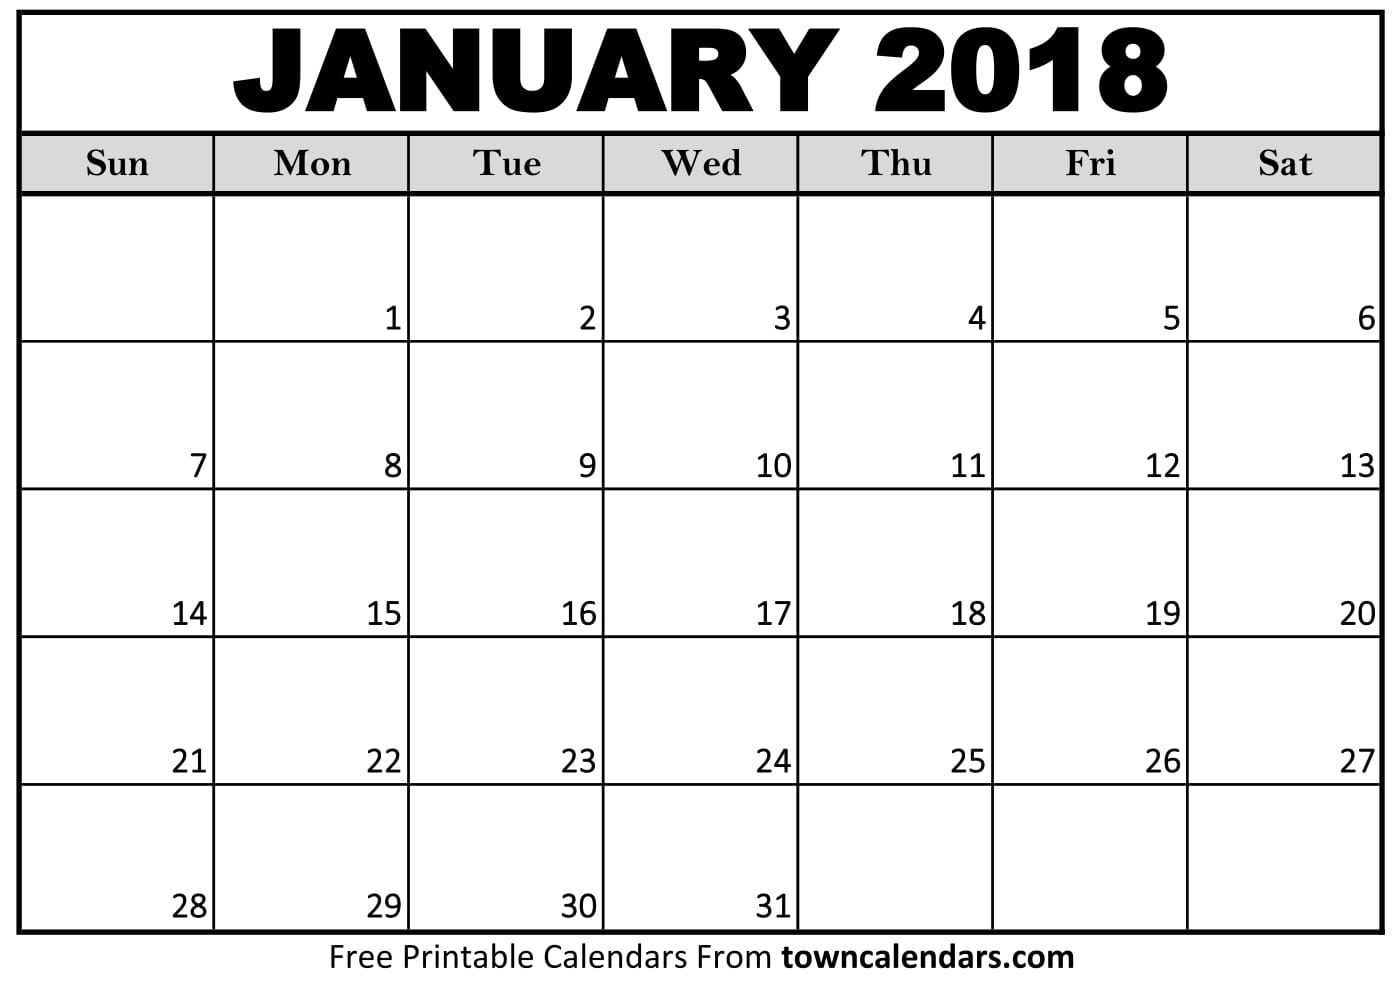 Blank Calendar January Printable : January calendar pdf printable template with holidays